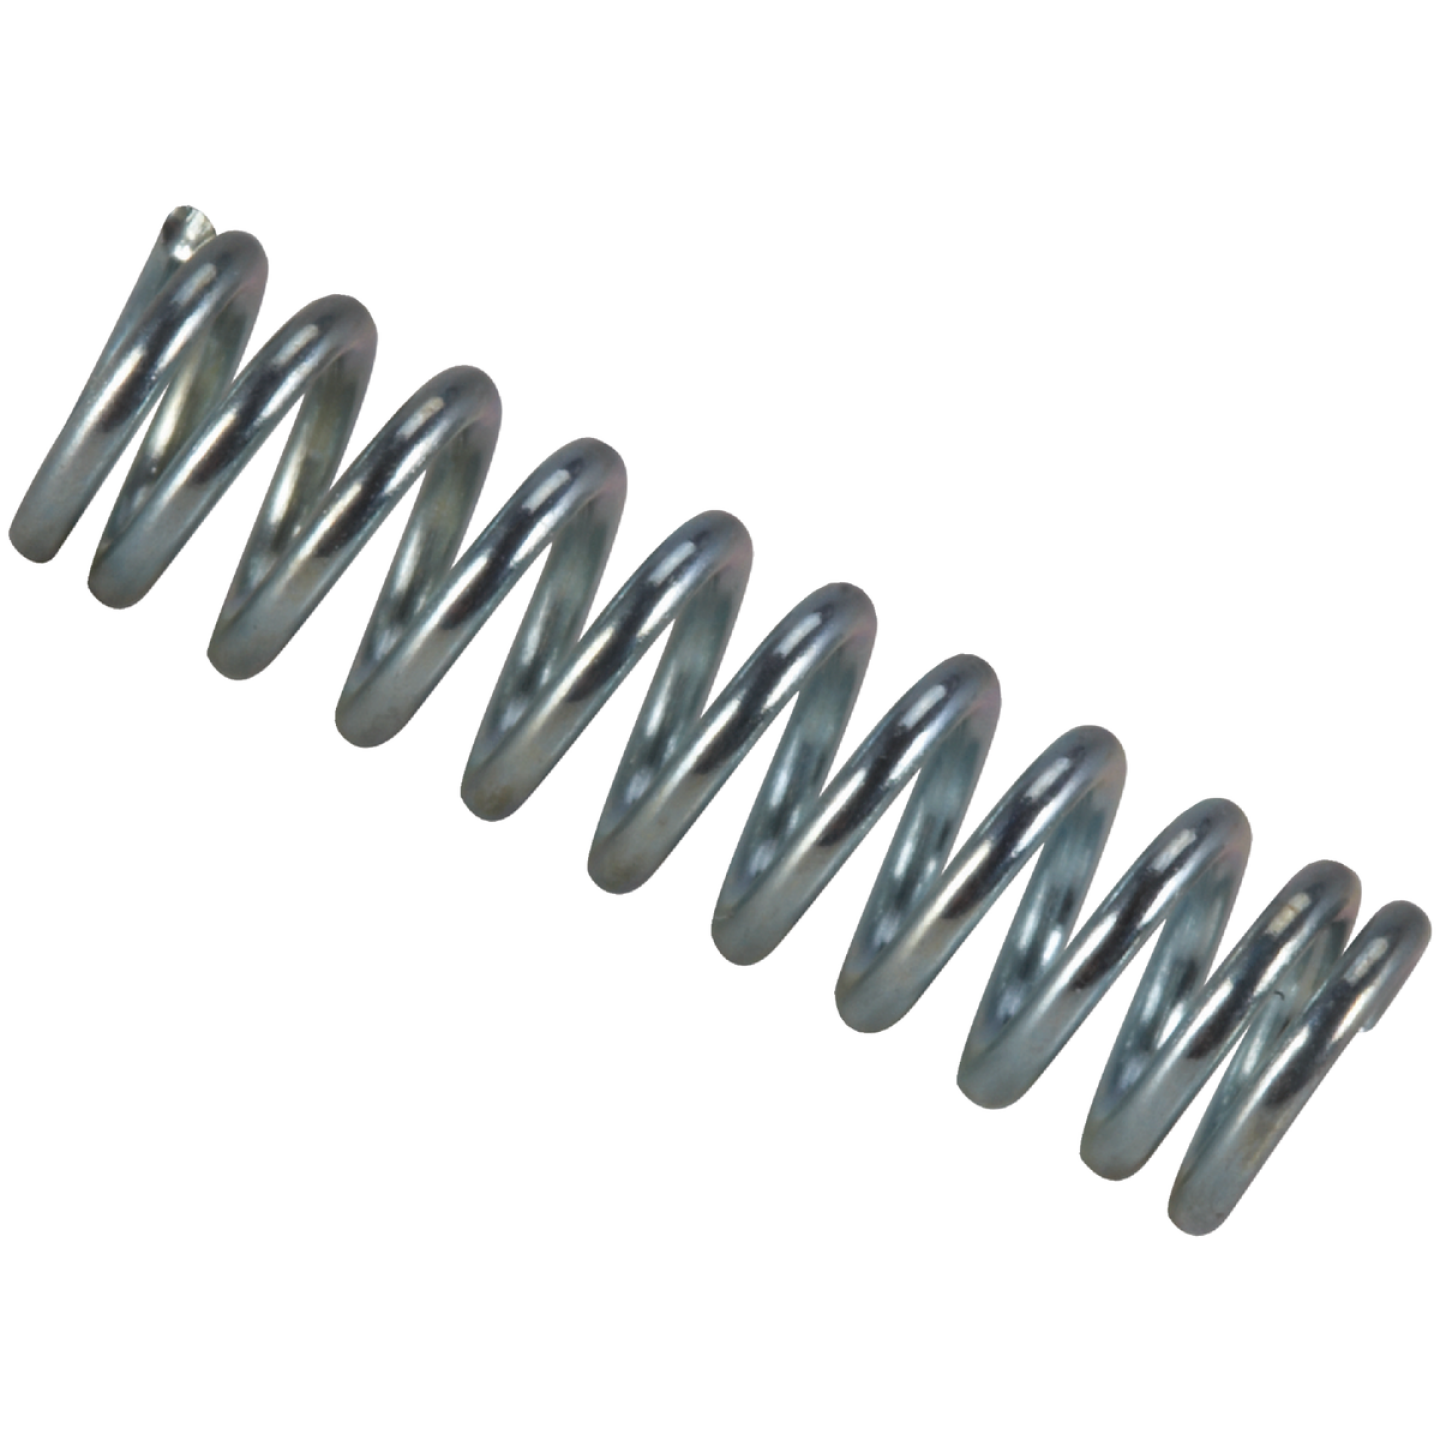 Century Spring 1-3/8 In. x 7/32 In. Compression Spring (4 Count) Image 1